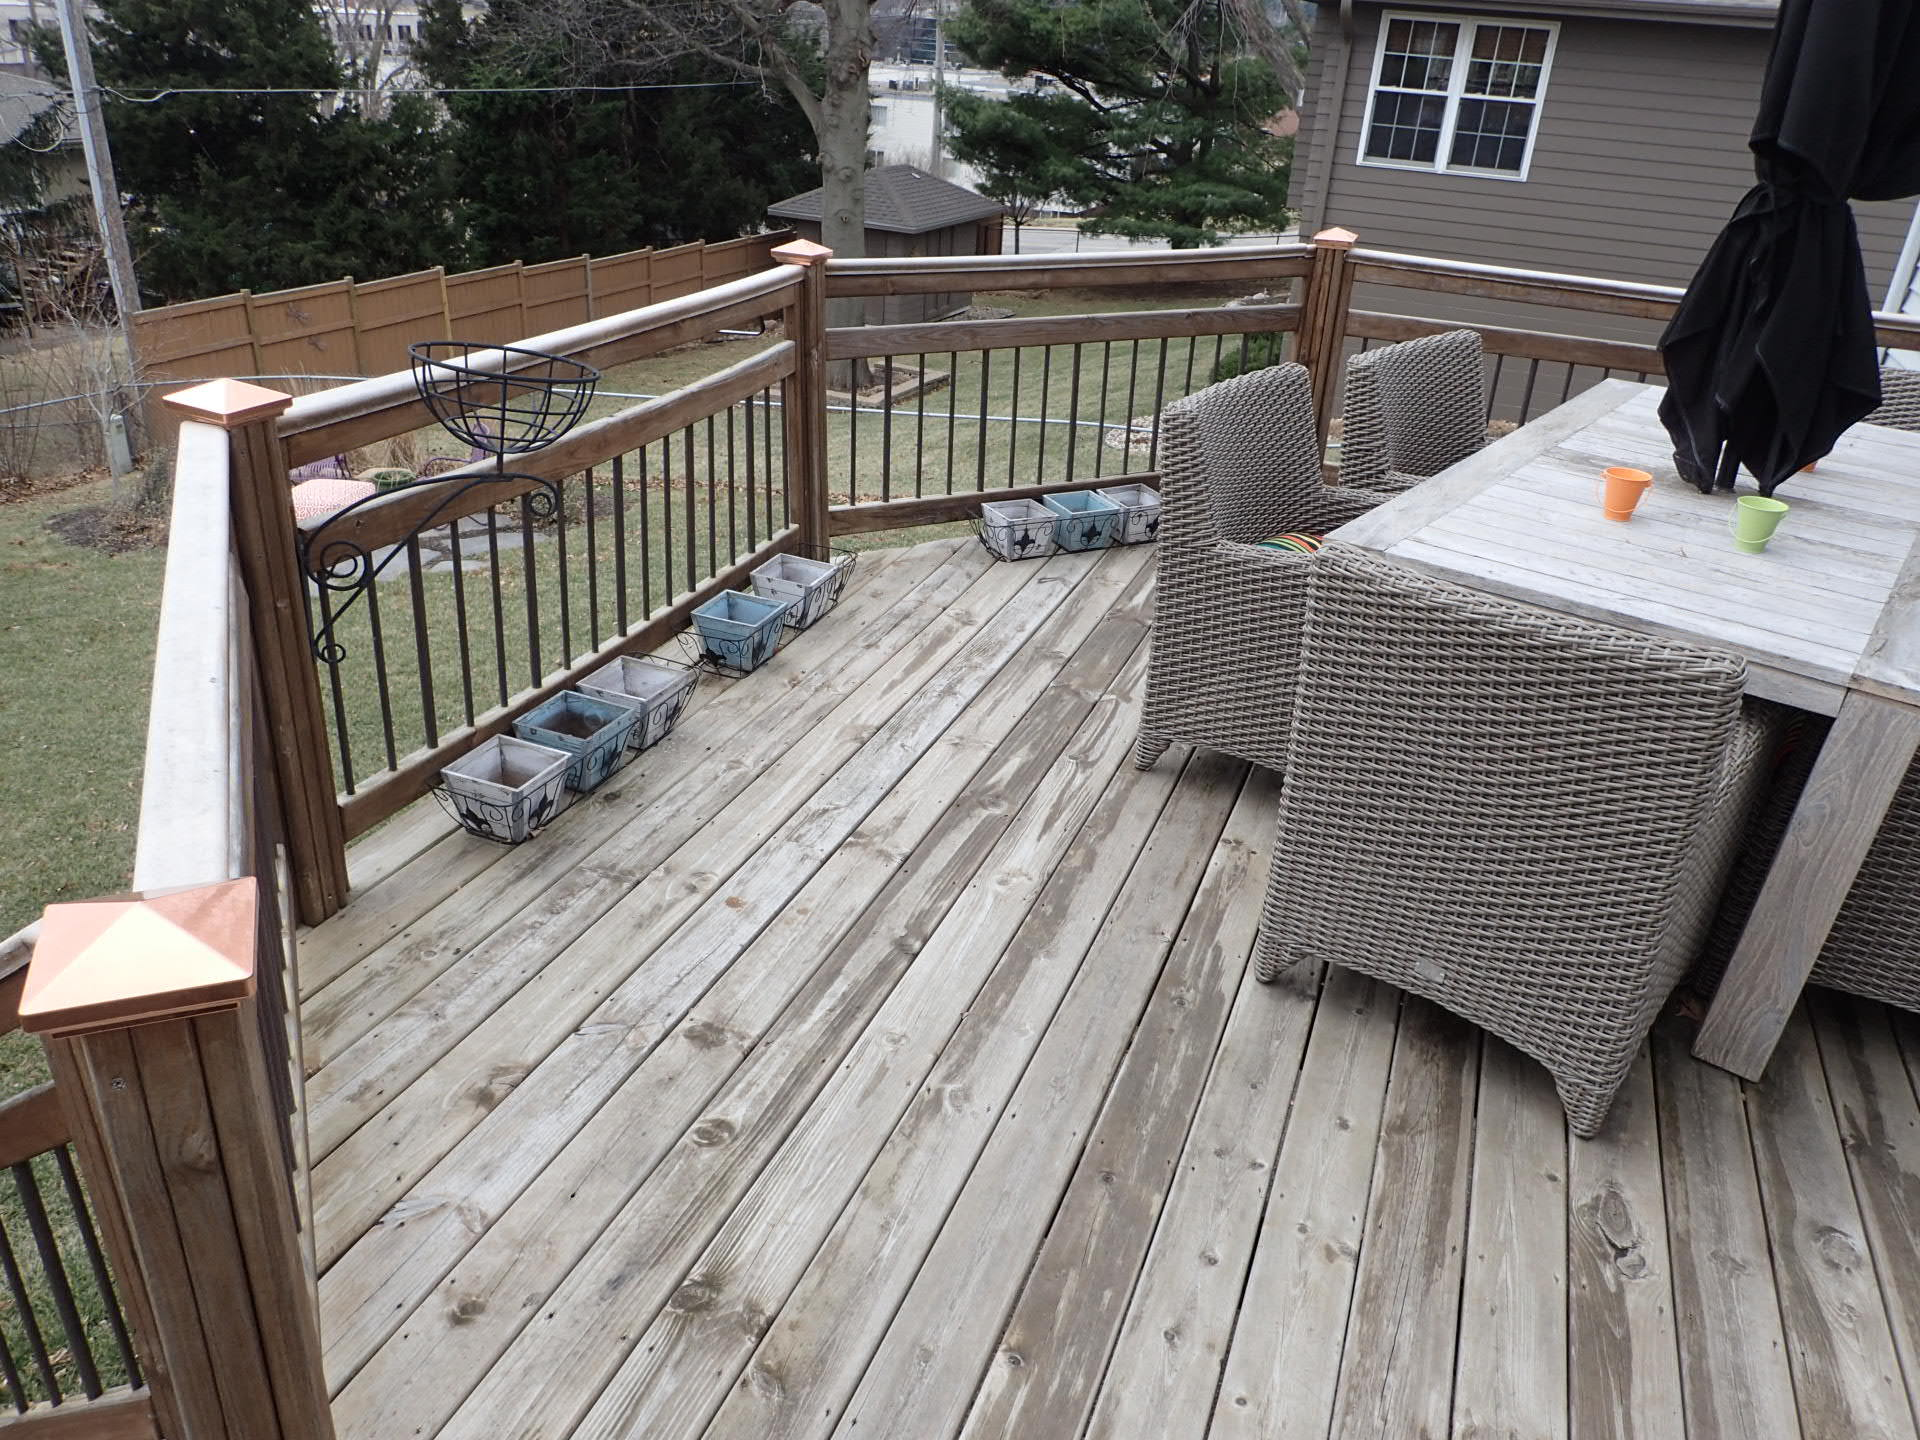 Looks can be deceiving on this deck railing